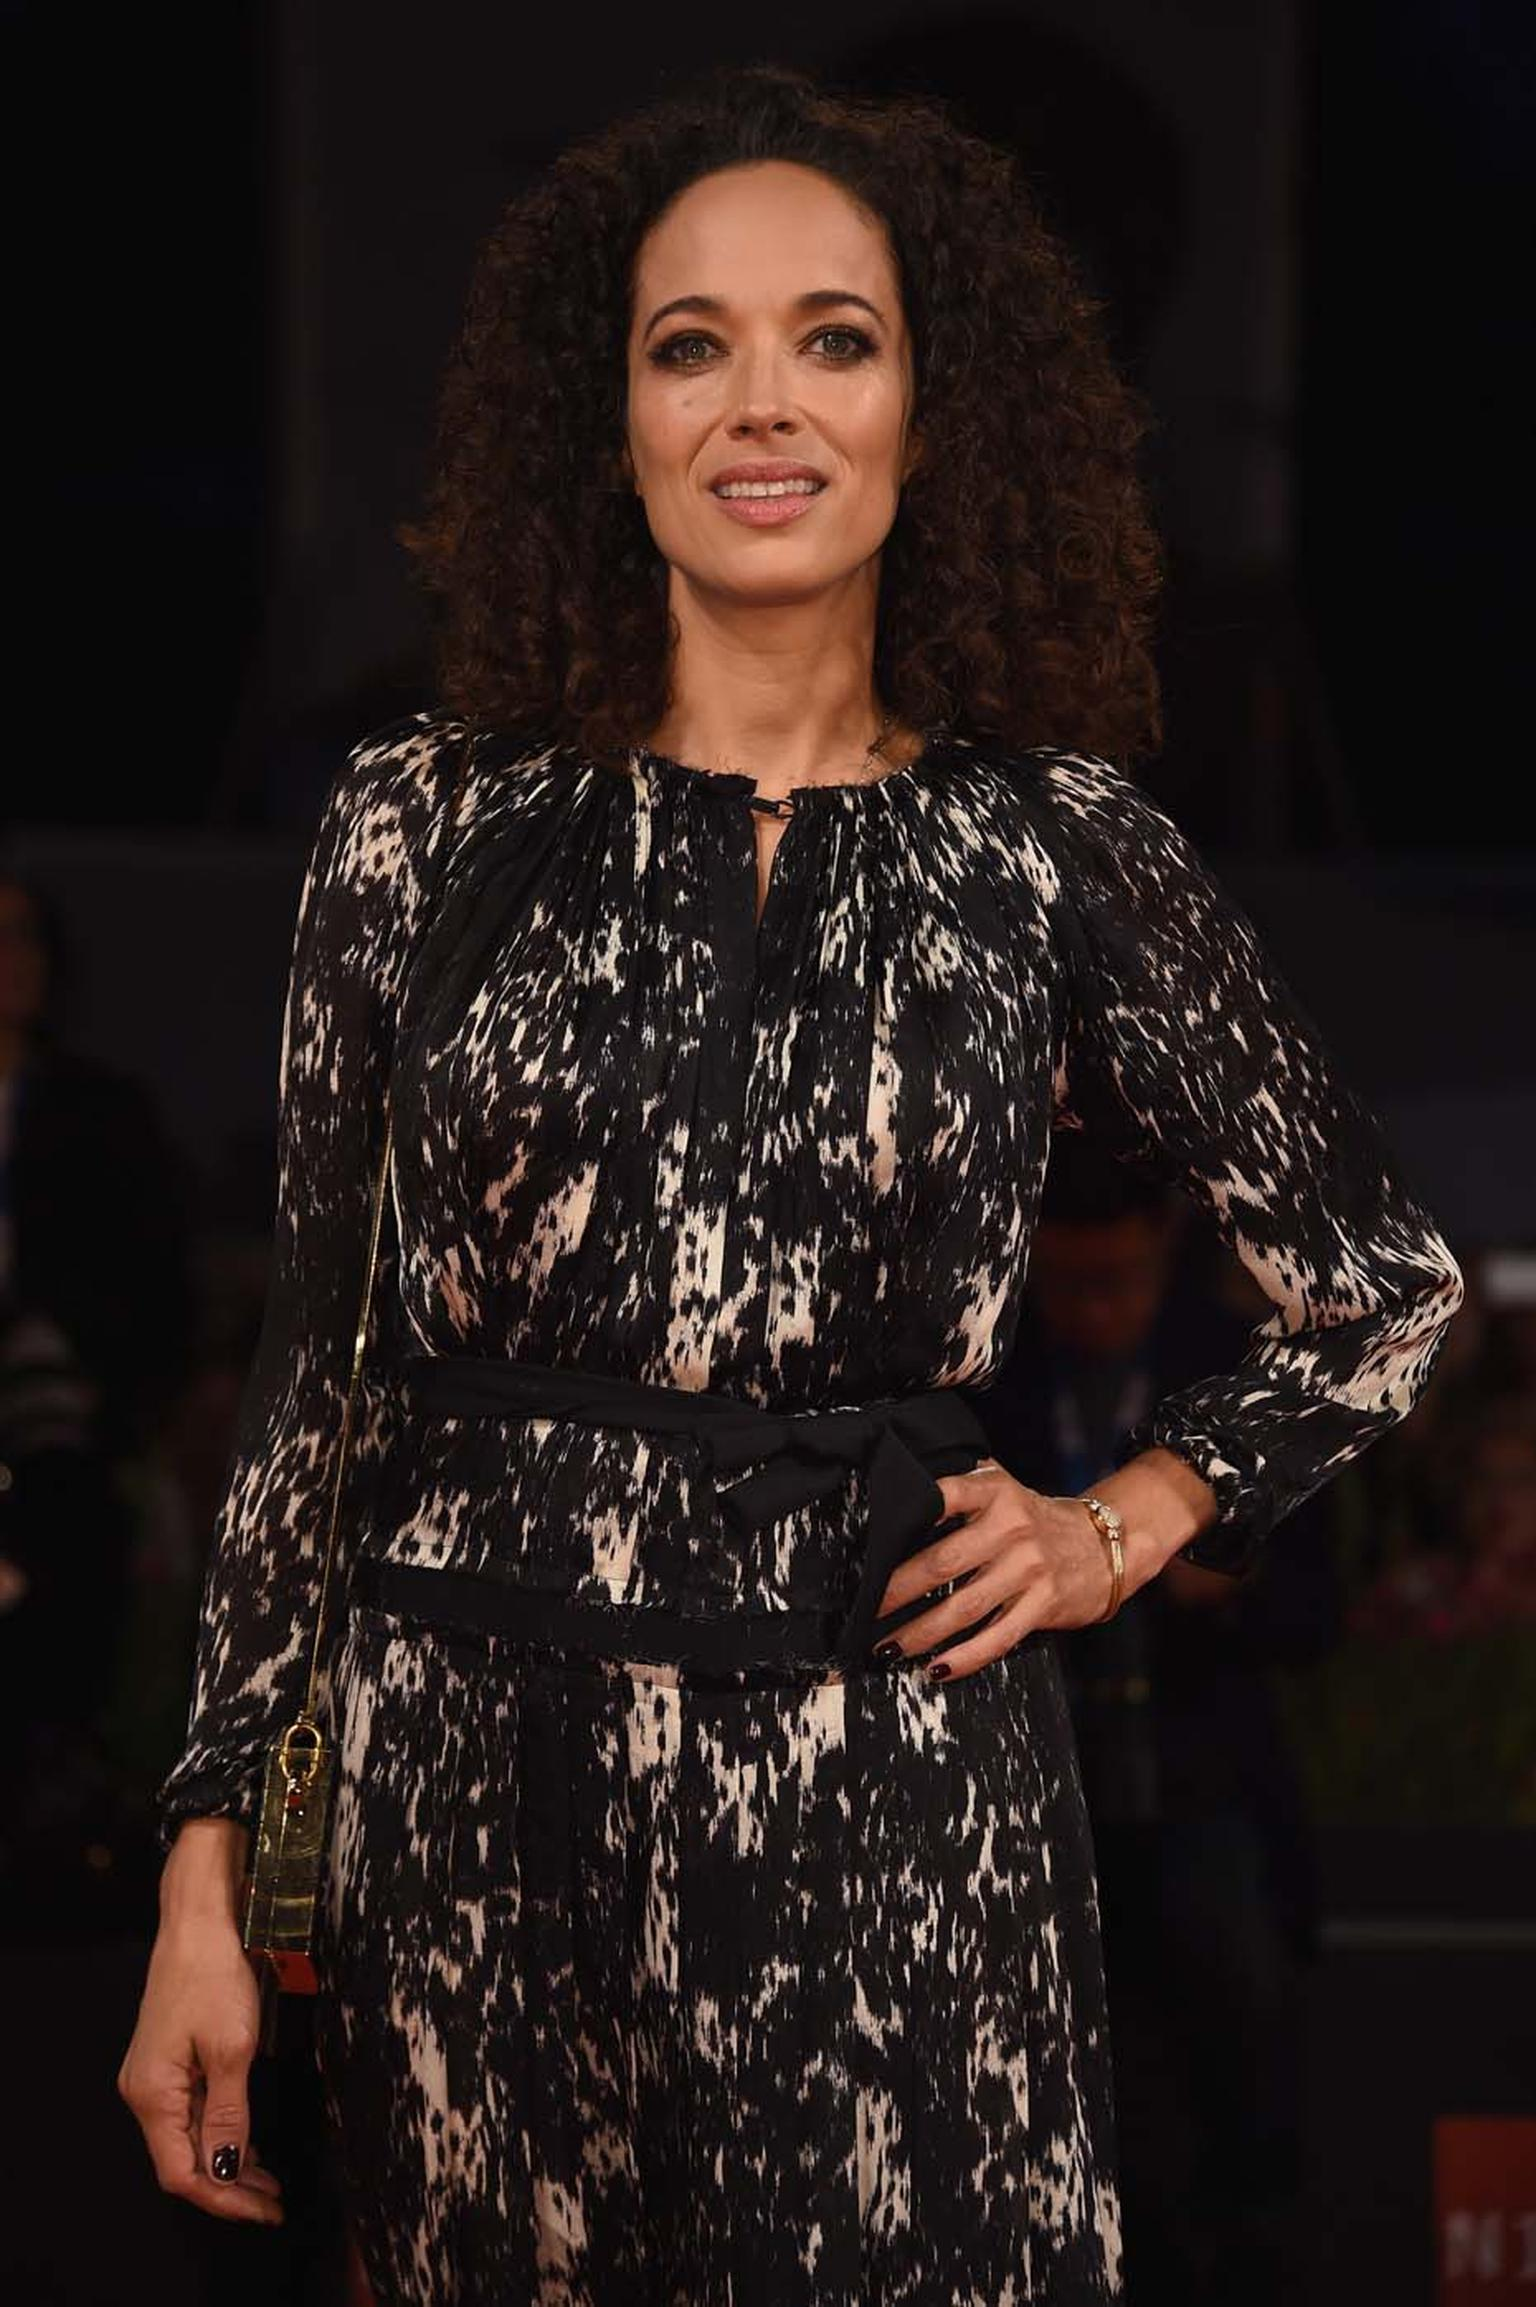 Carmen Chaplin was also spotted wearing a vintage Jaeger-LeCoultre watch at the Venice Film Festival 2014.